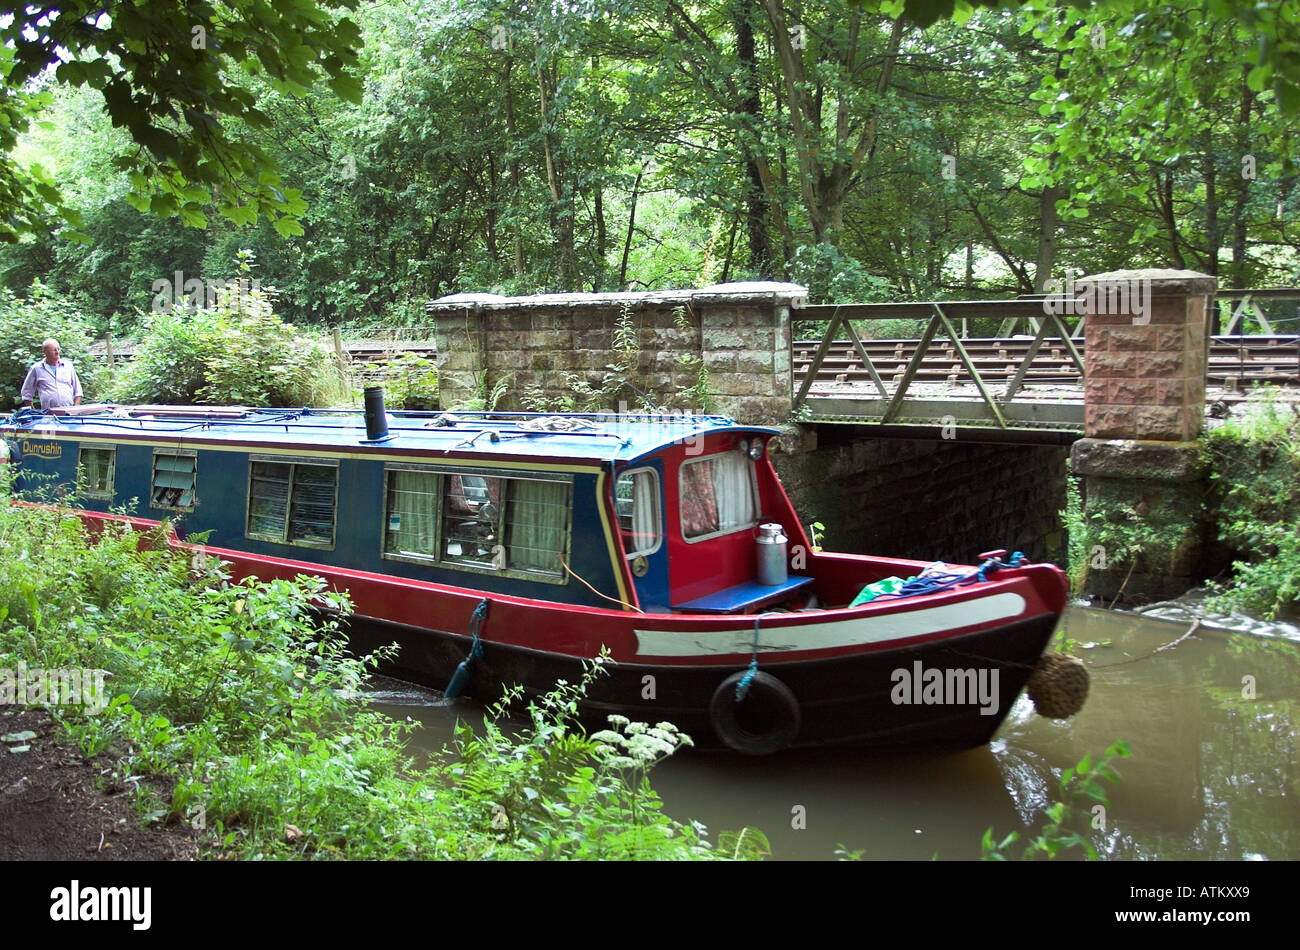 Narrow boat on the Caldon canal at Consall, near Leek, Staffordshire. England - Stock Image